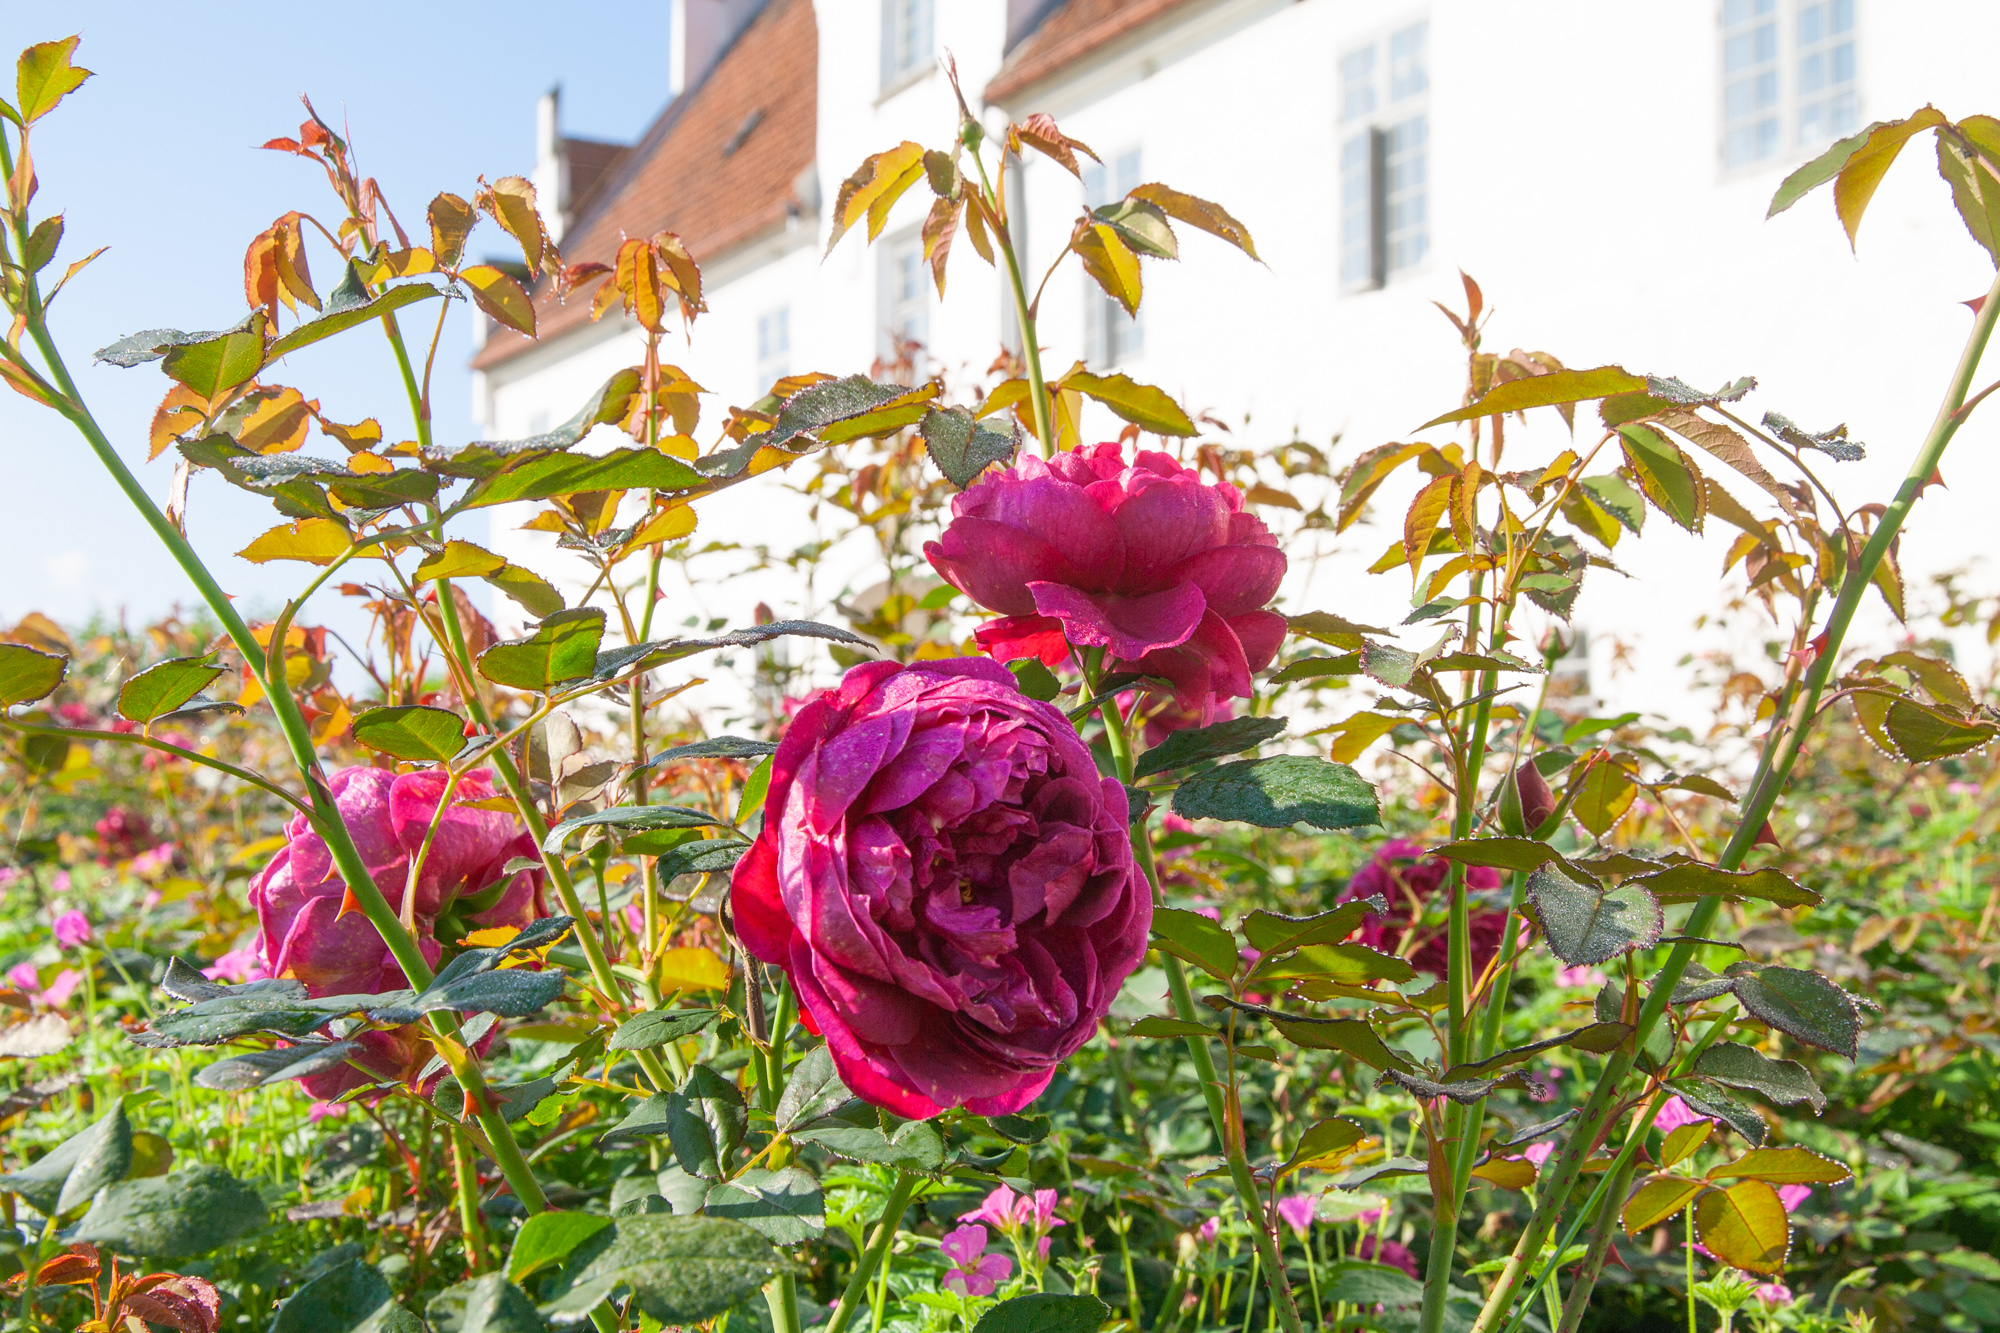 The Rose Garden boasts selections of English Austen Roses and Danish Old Roses.